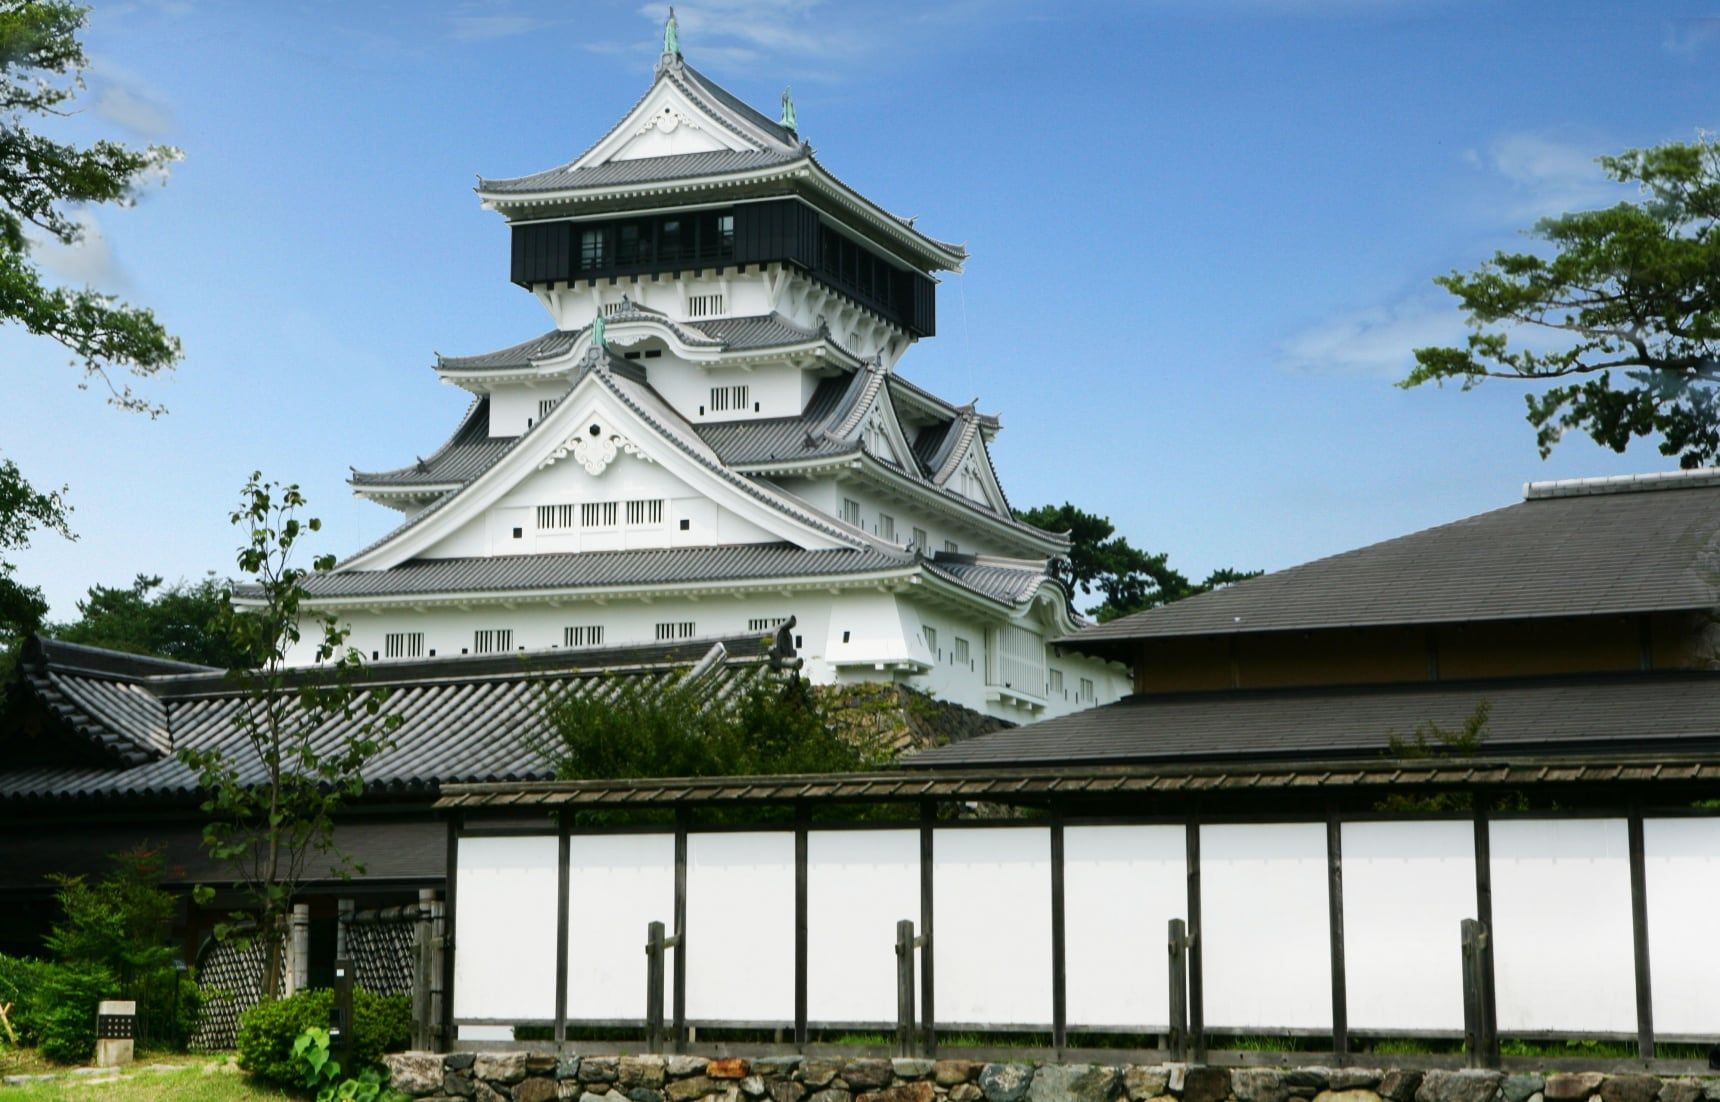 The Meiji Restoration in Kitakyushu